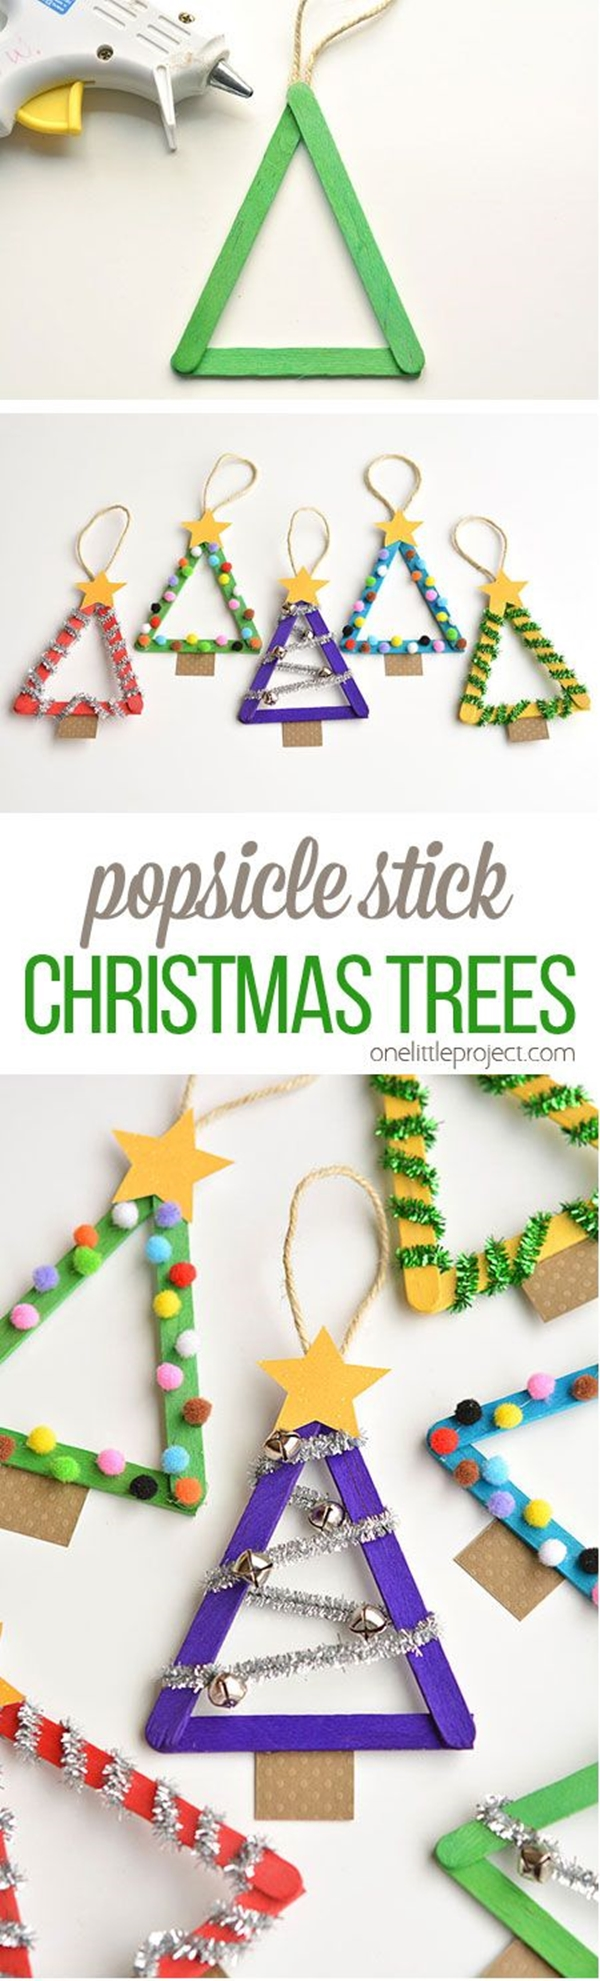 Amazing Popsicle Stick Crafts and Projects - (16)